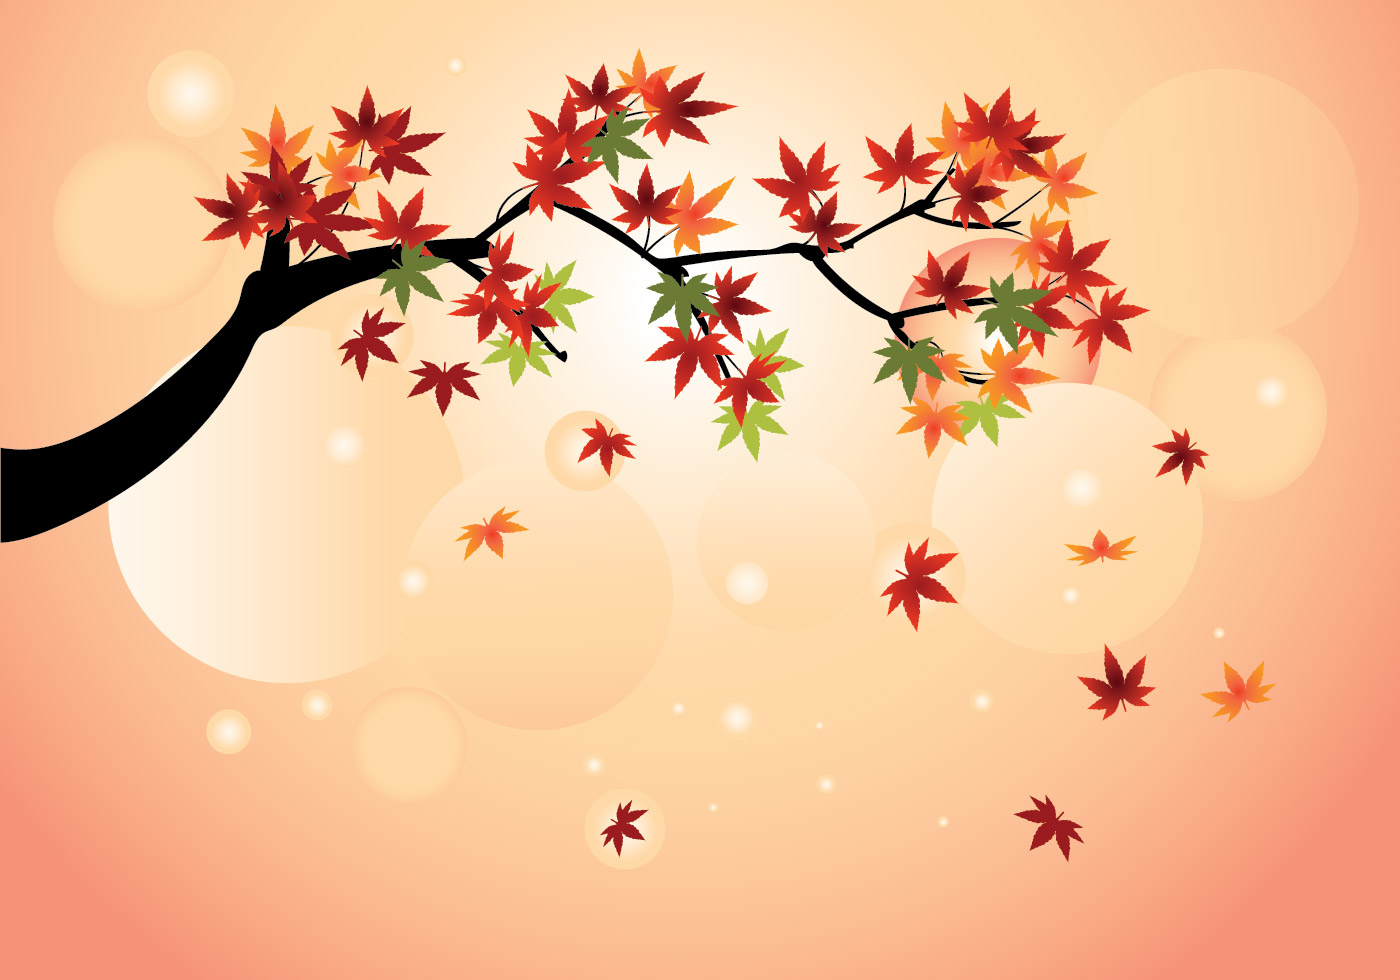 Maple Leaf Wallpaper For Fall Season Smooth Japanese Maple With Fall Maple Leaves Vector